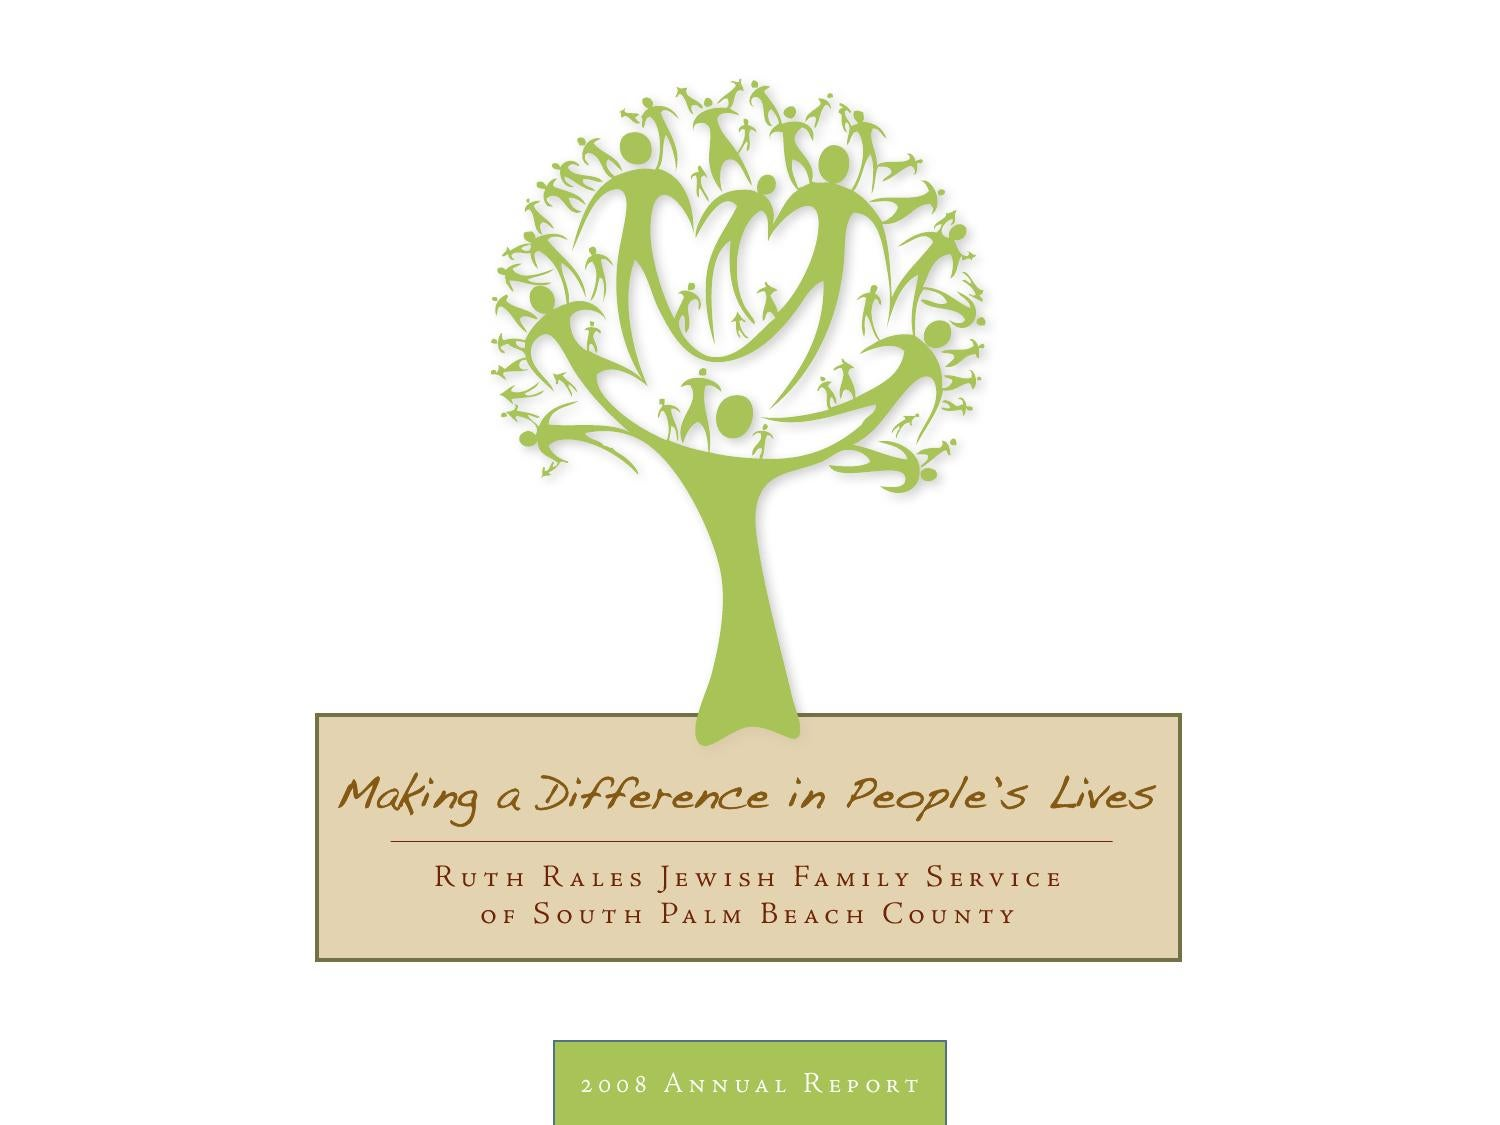 rrjfs 2005 annual report by ruth rales jewish family service issuu